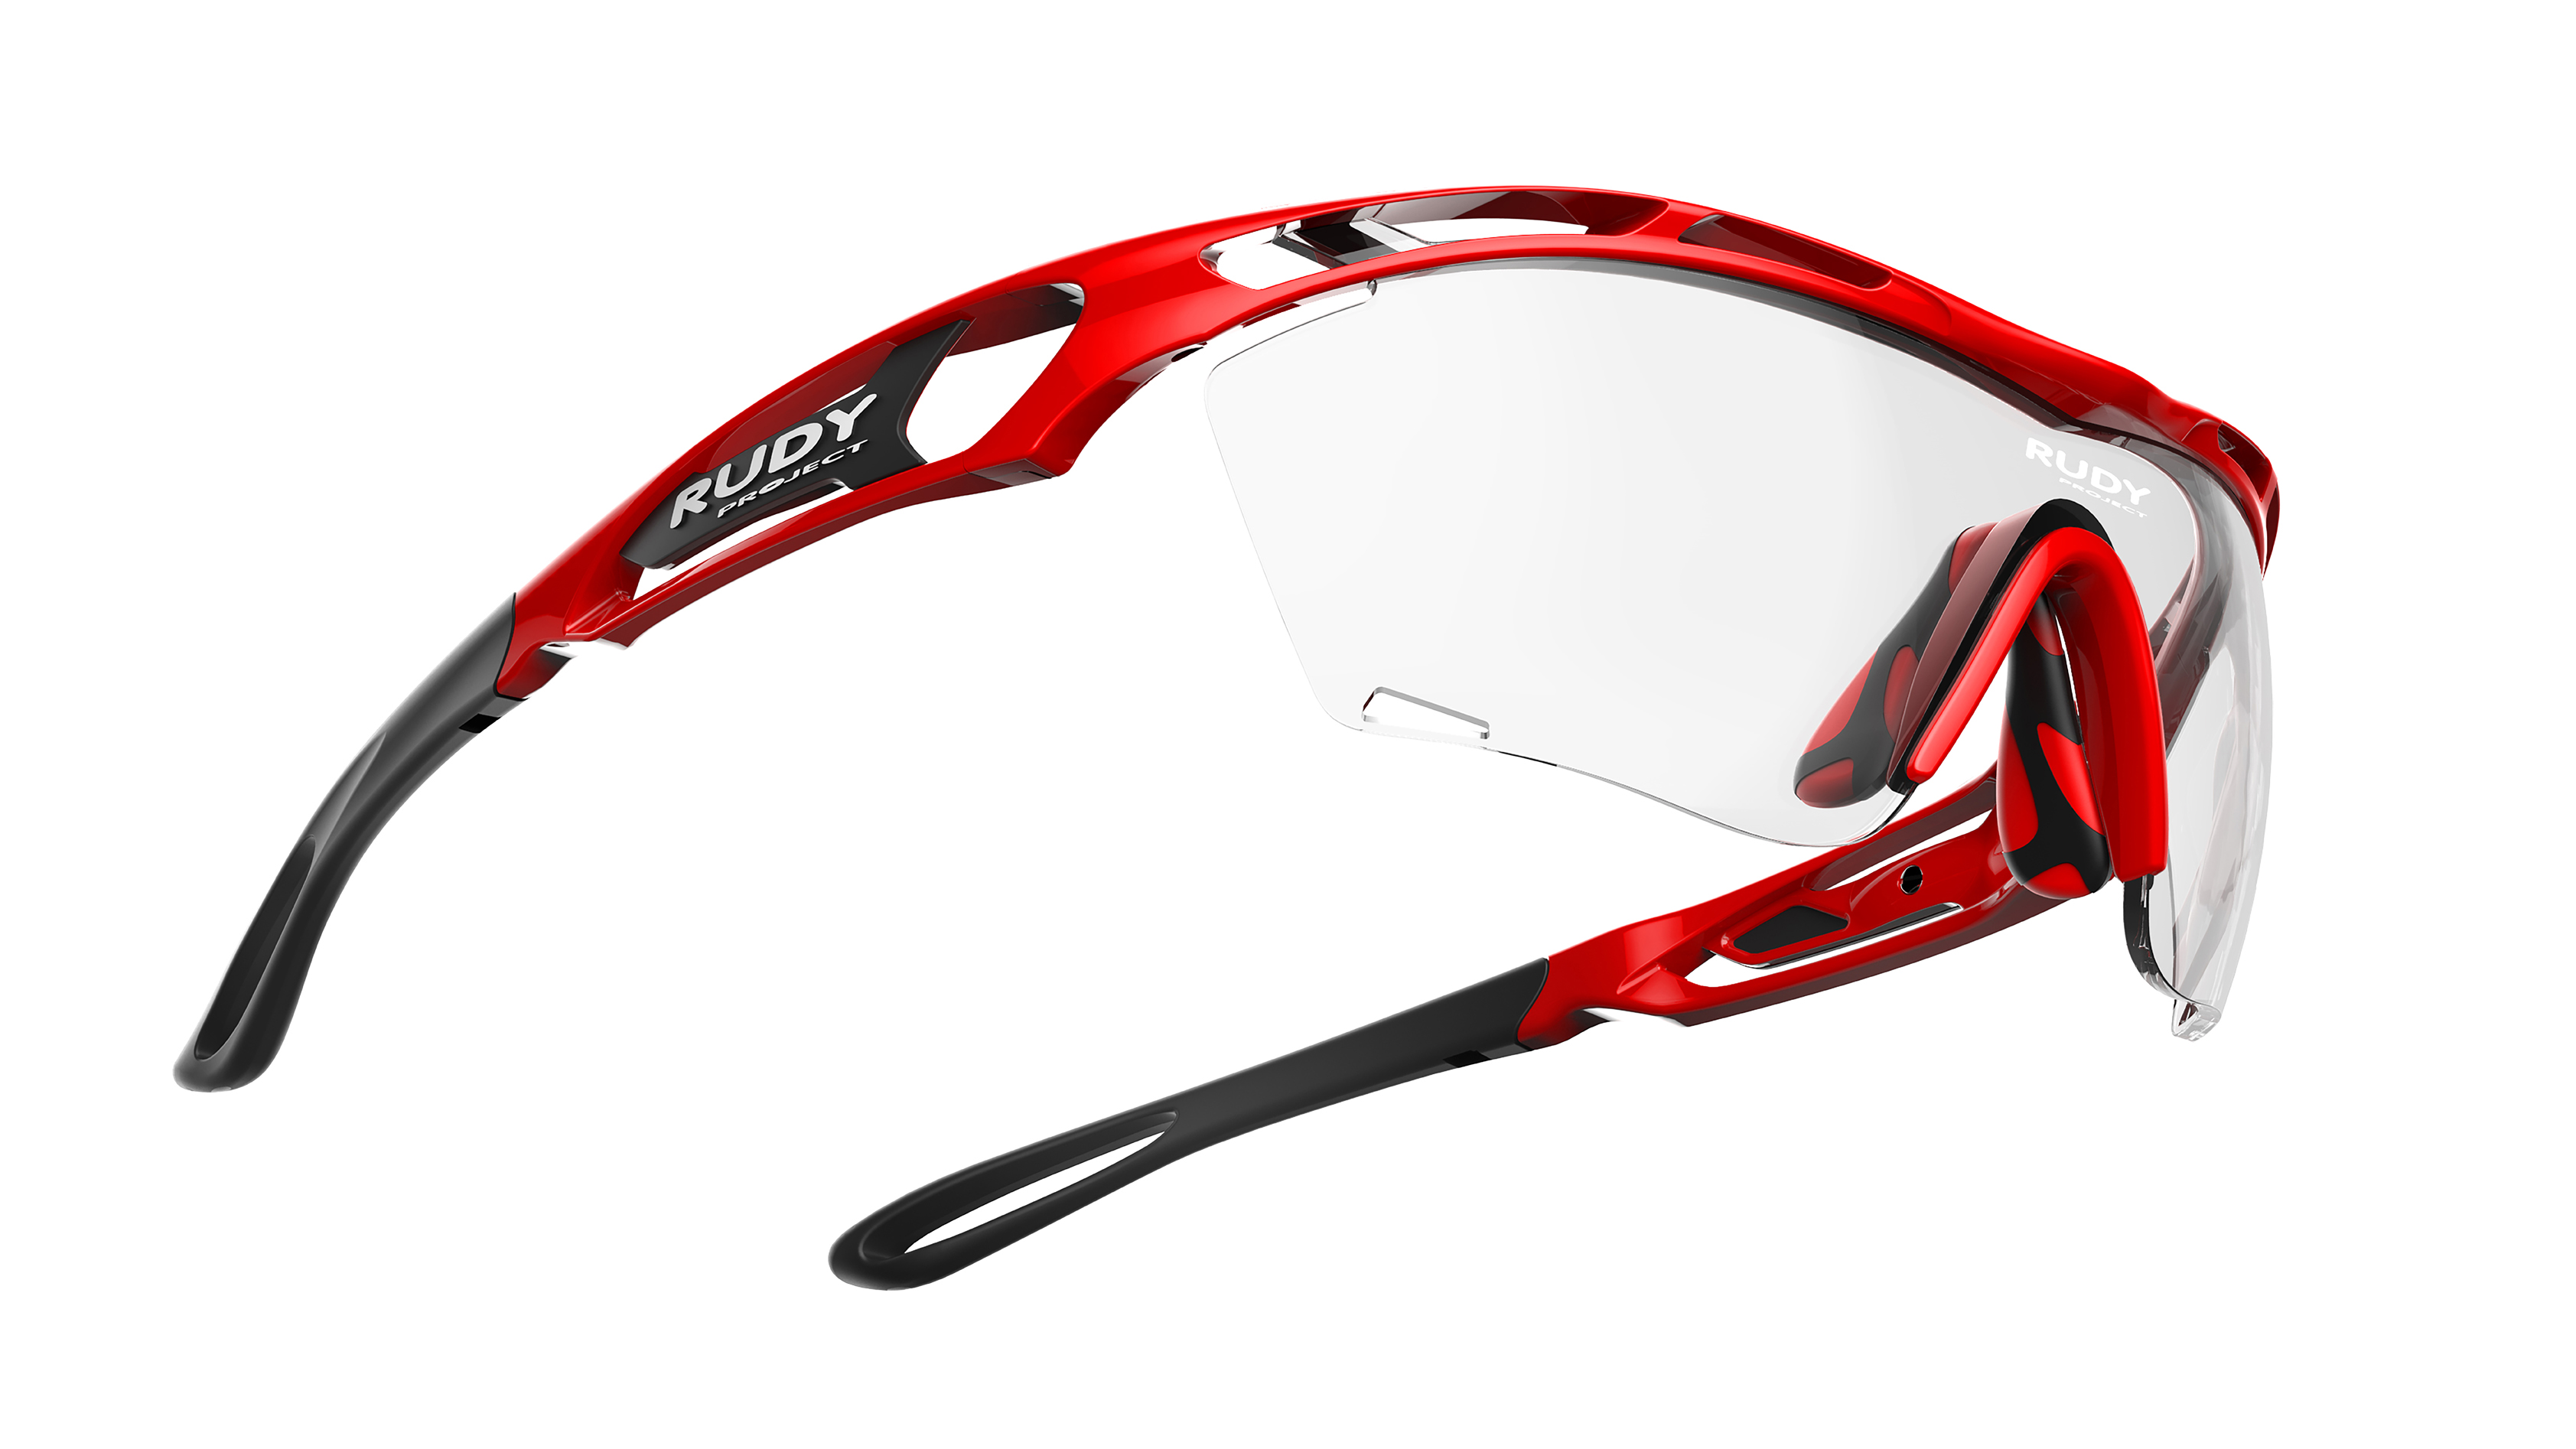 f92b2576e94 The frames are feather-light and were designed with aerodynamics in mind.